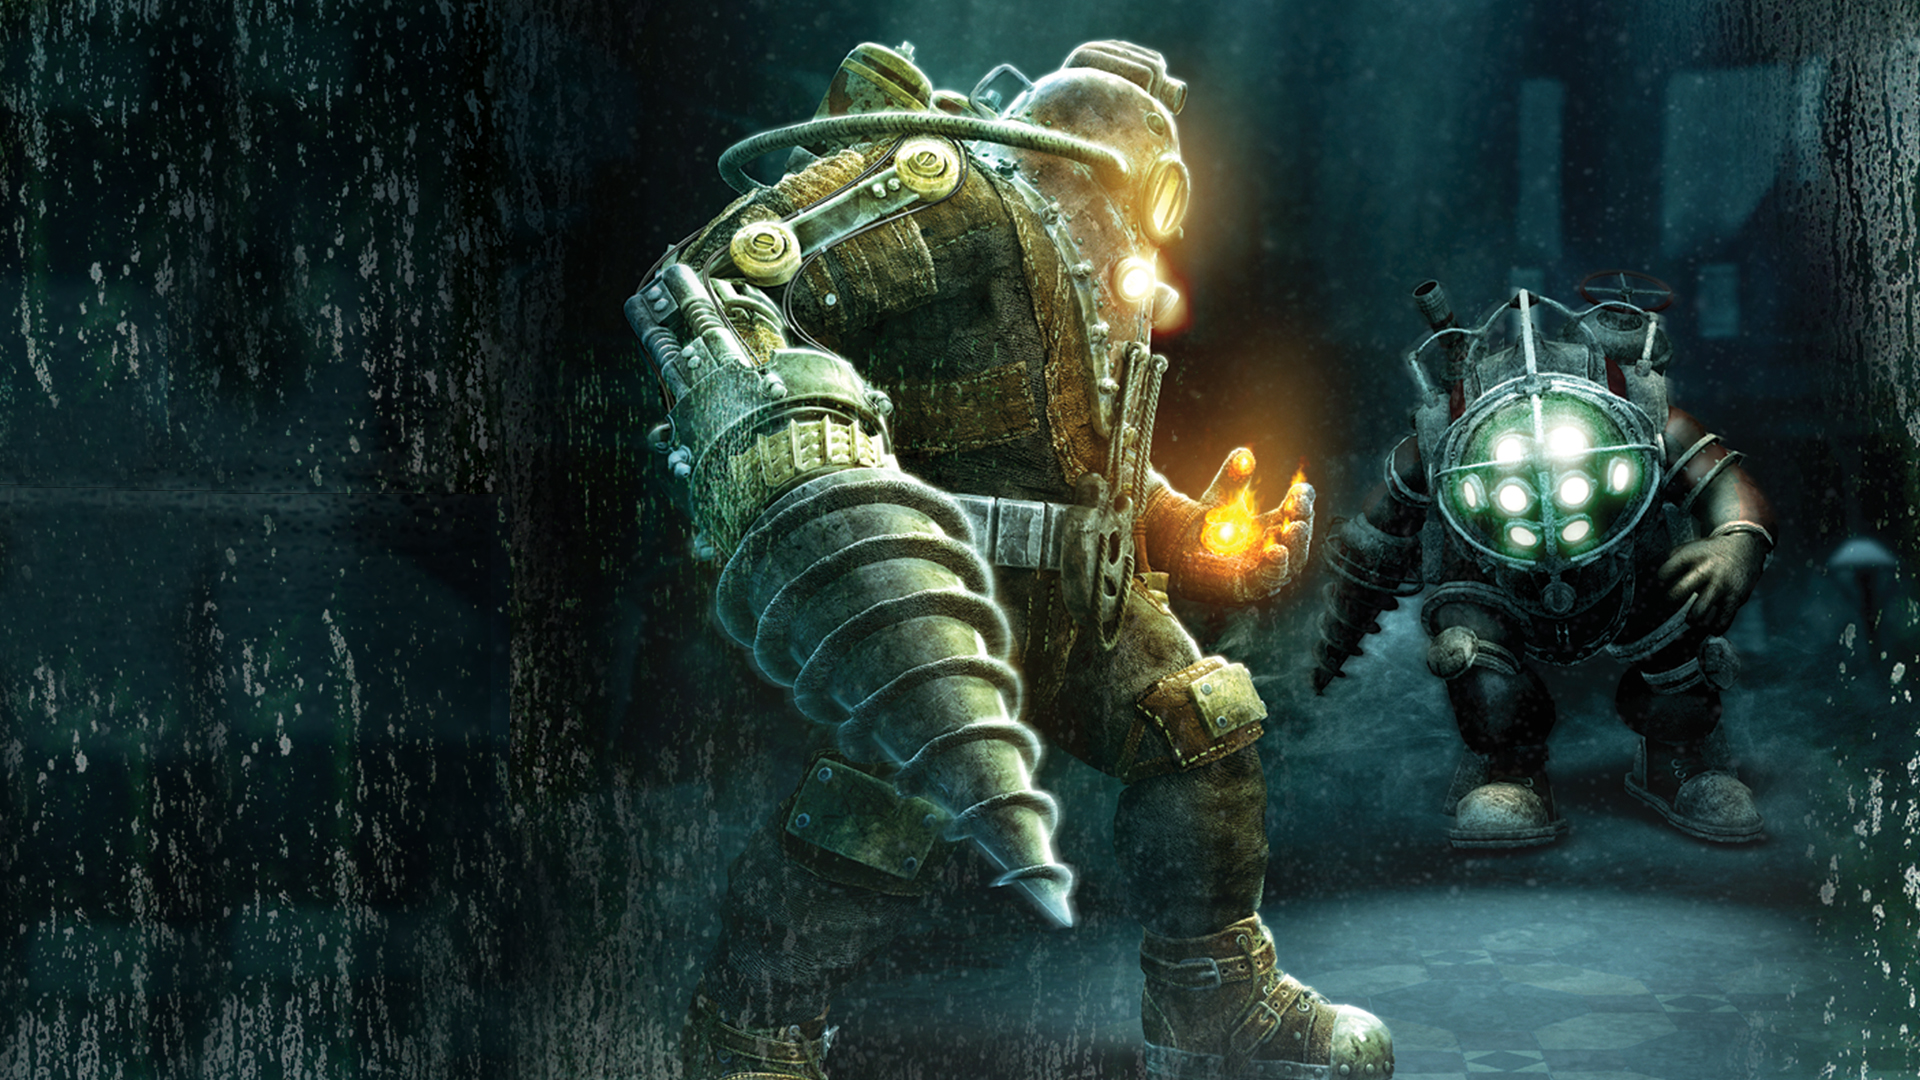 Bioshock Wallpaper 86 images in Collection Page 1 1920x1080